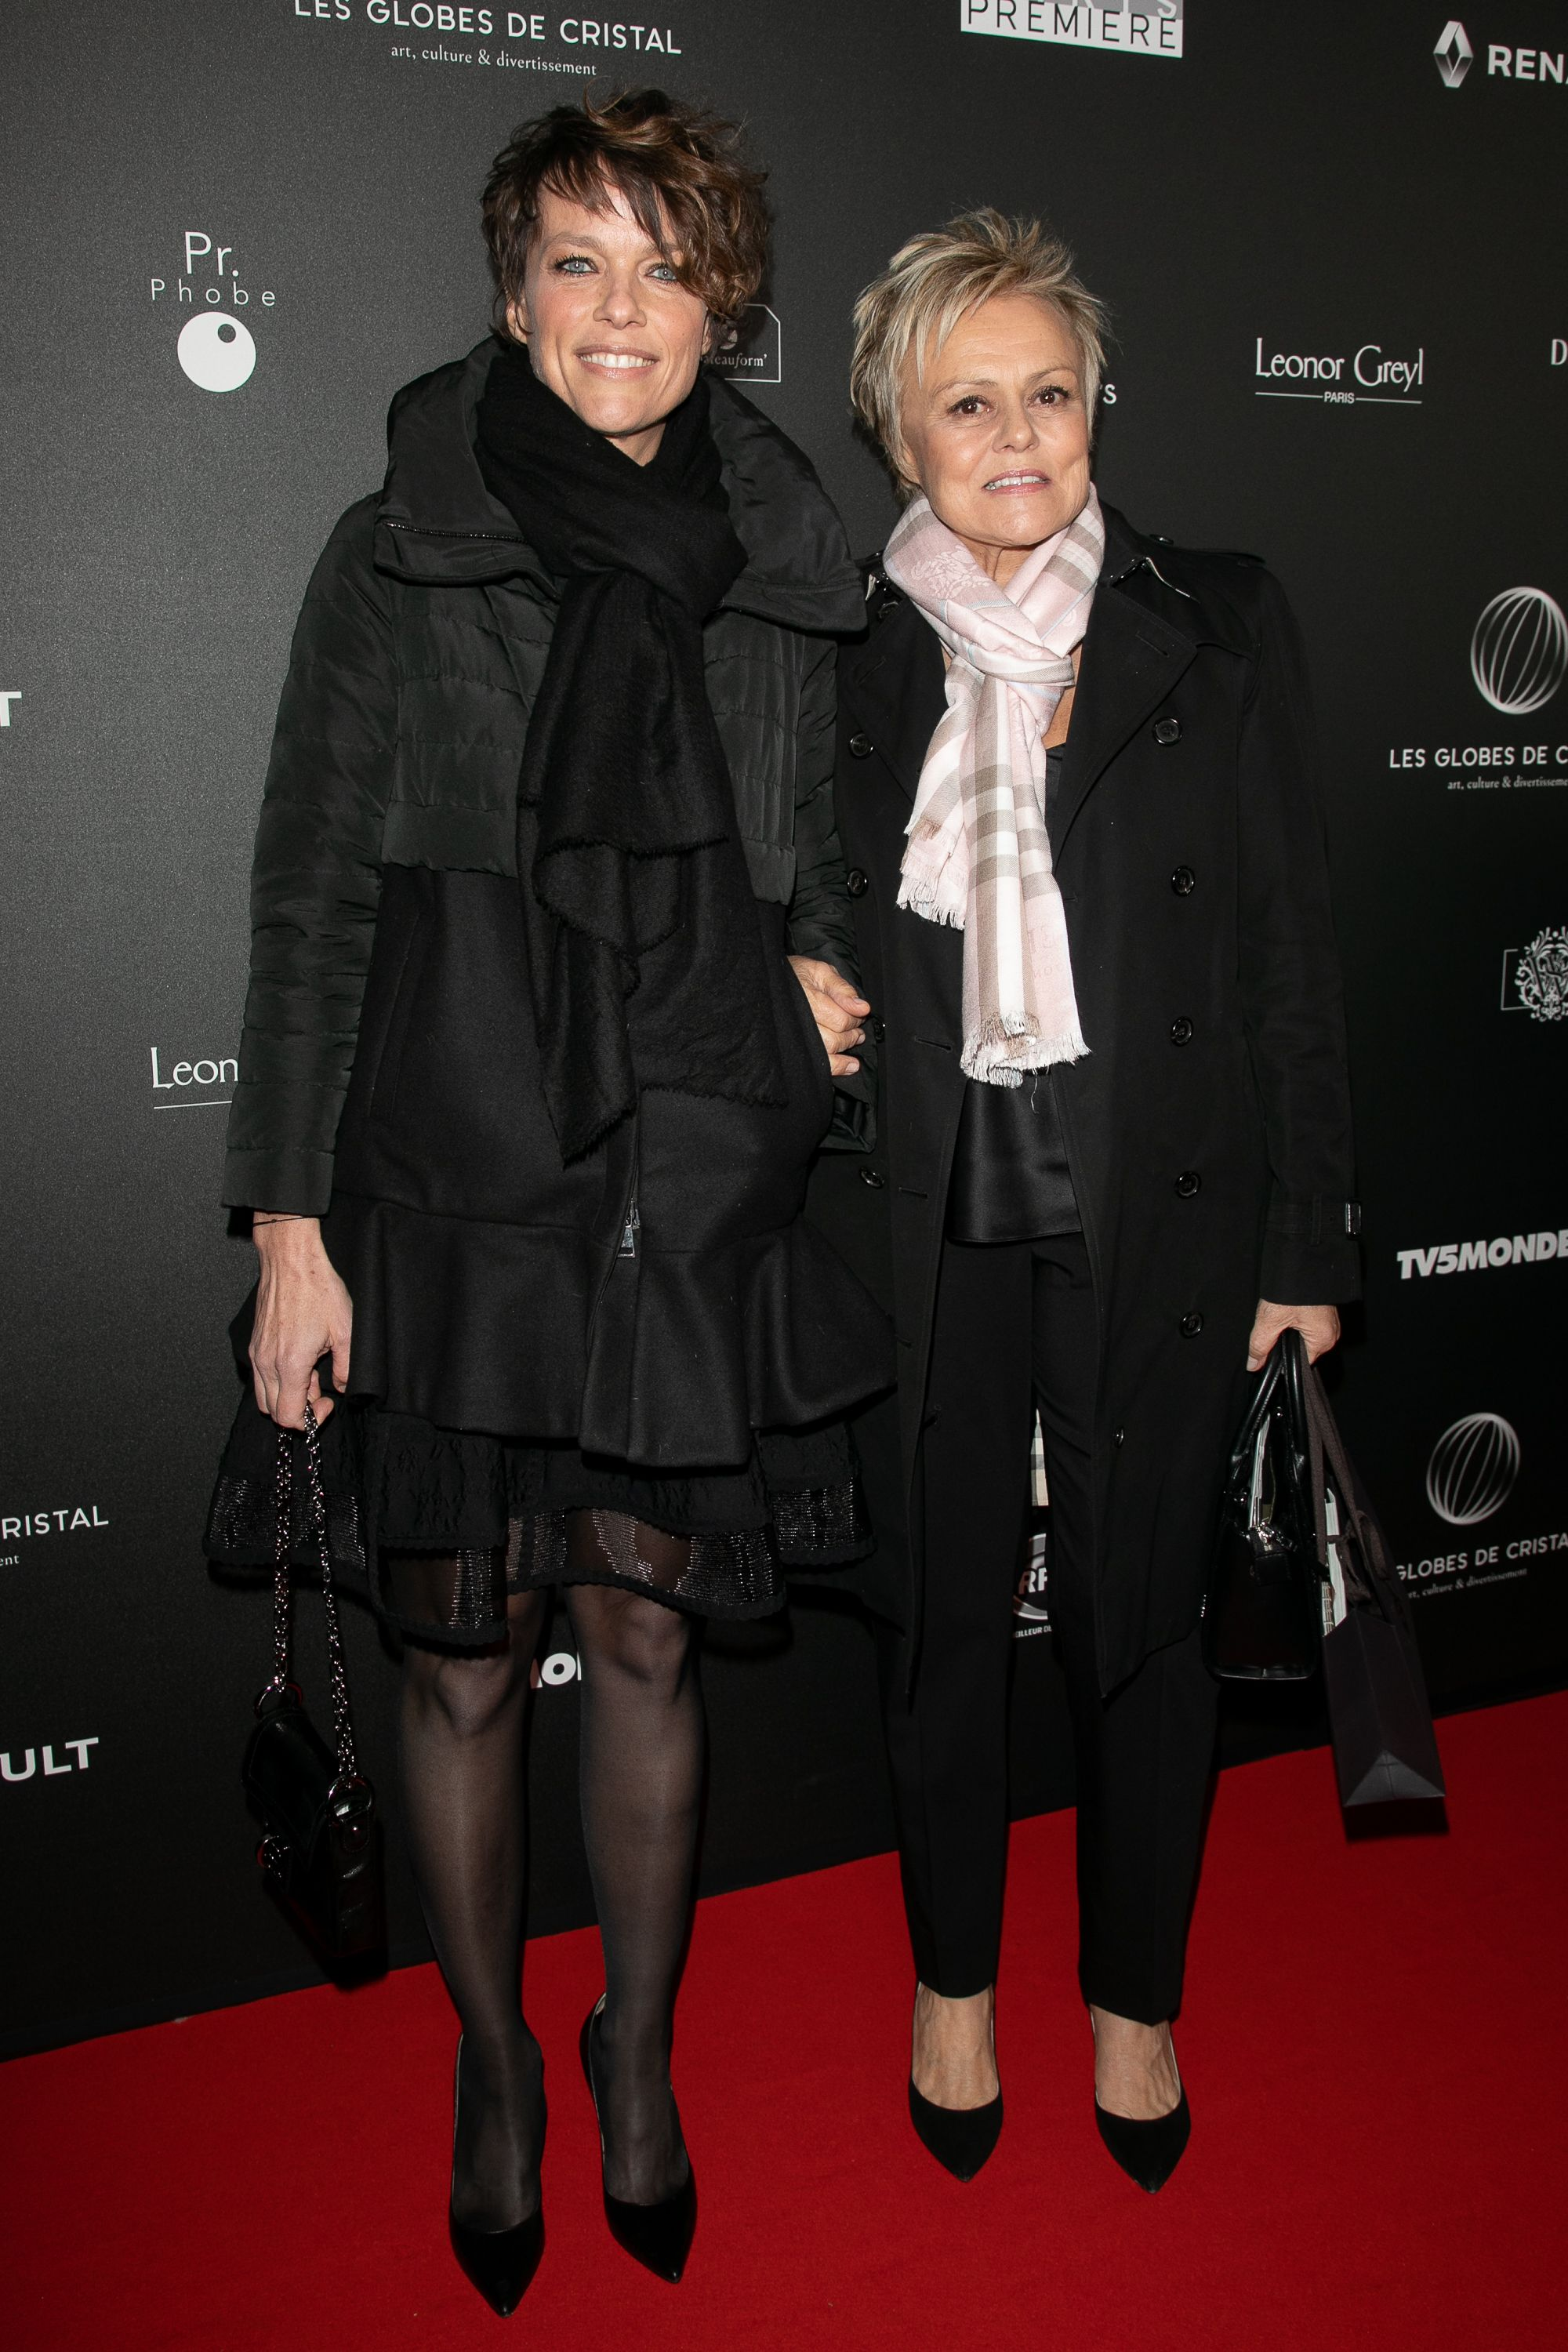 Anne Le Nen et Muriel Robin à la Salle Wagram le 04 février 2019 à Paris, France.  | Photo : Getty Images